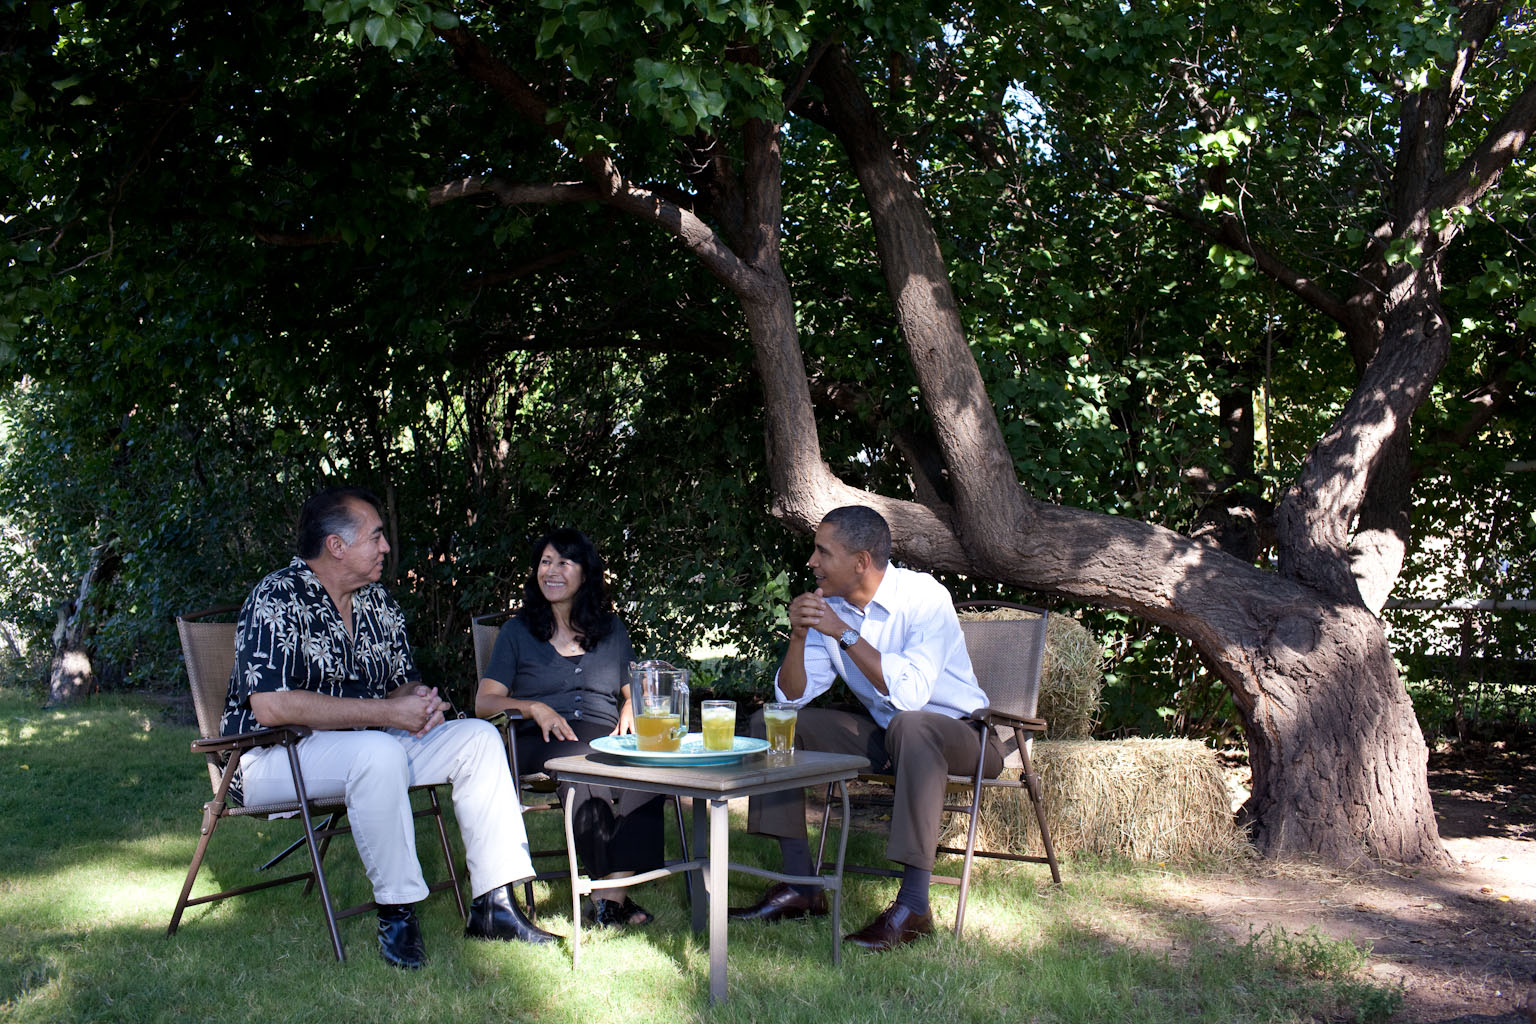 President Barack Obama Meets with Andy and Etta Cavalier at their Home in Albuquerque, New Mexico